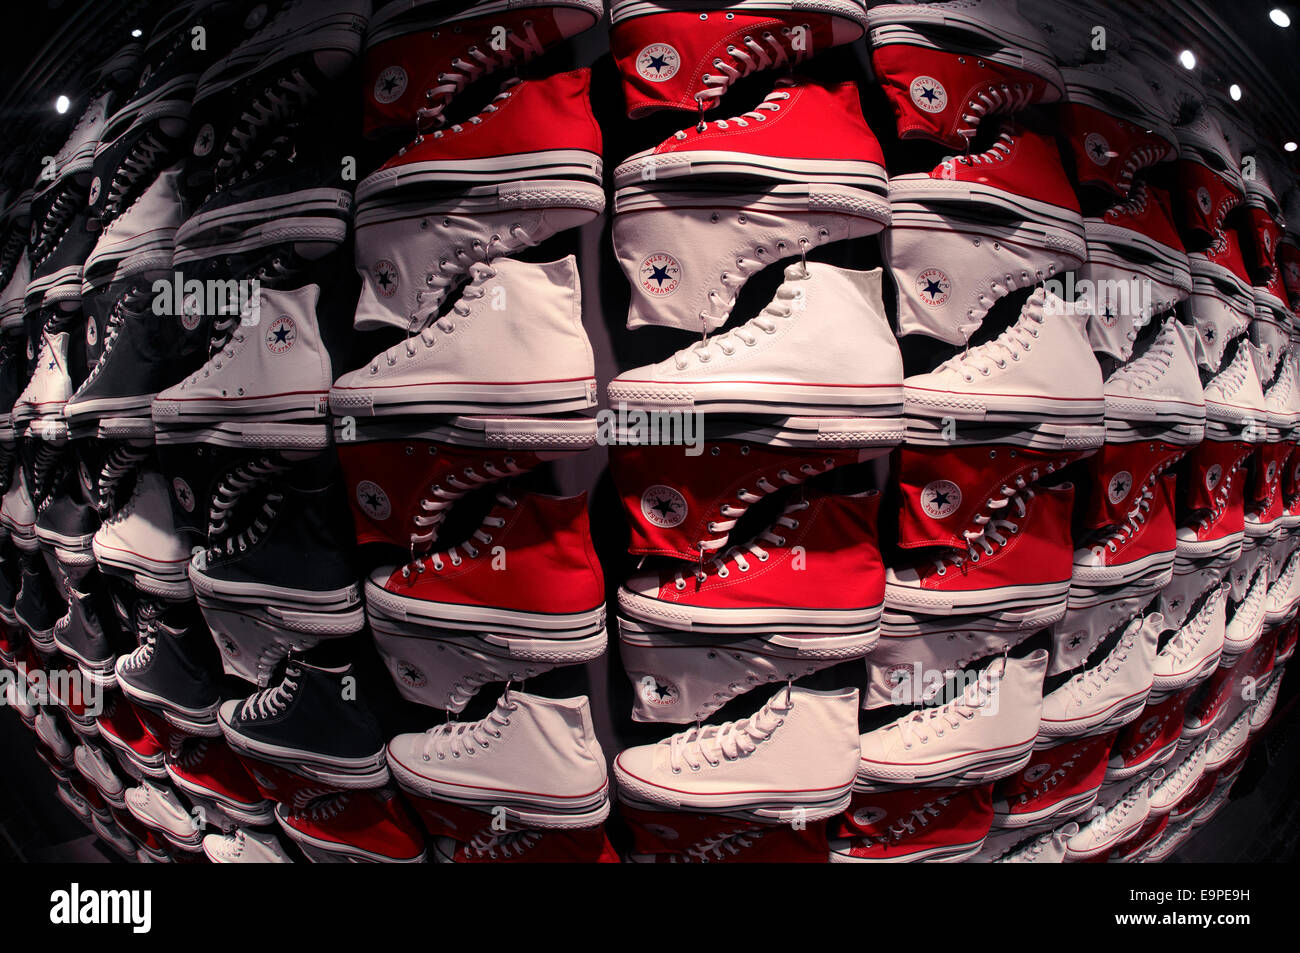 Converse All Star shoes. - Stock Image